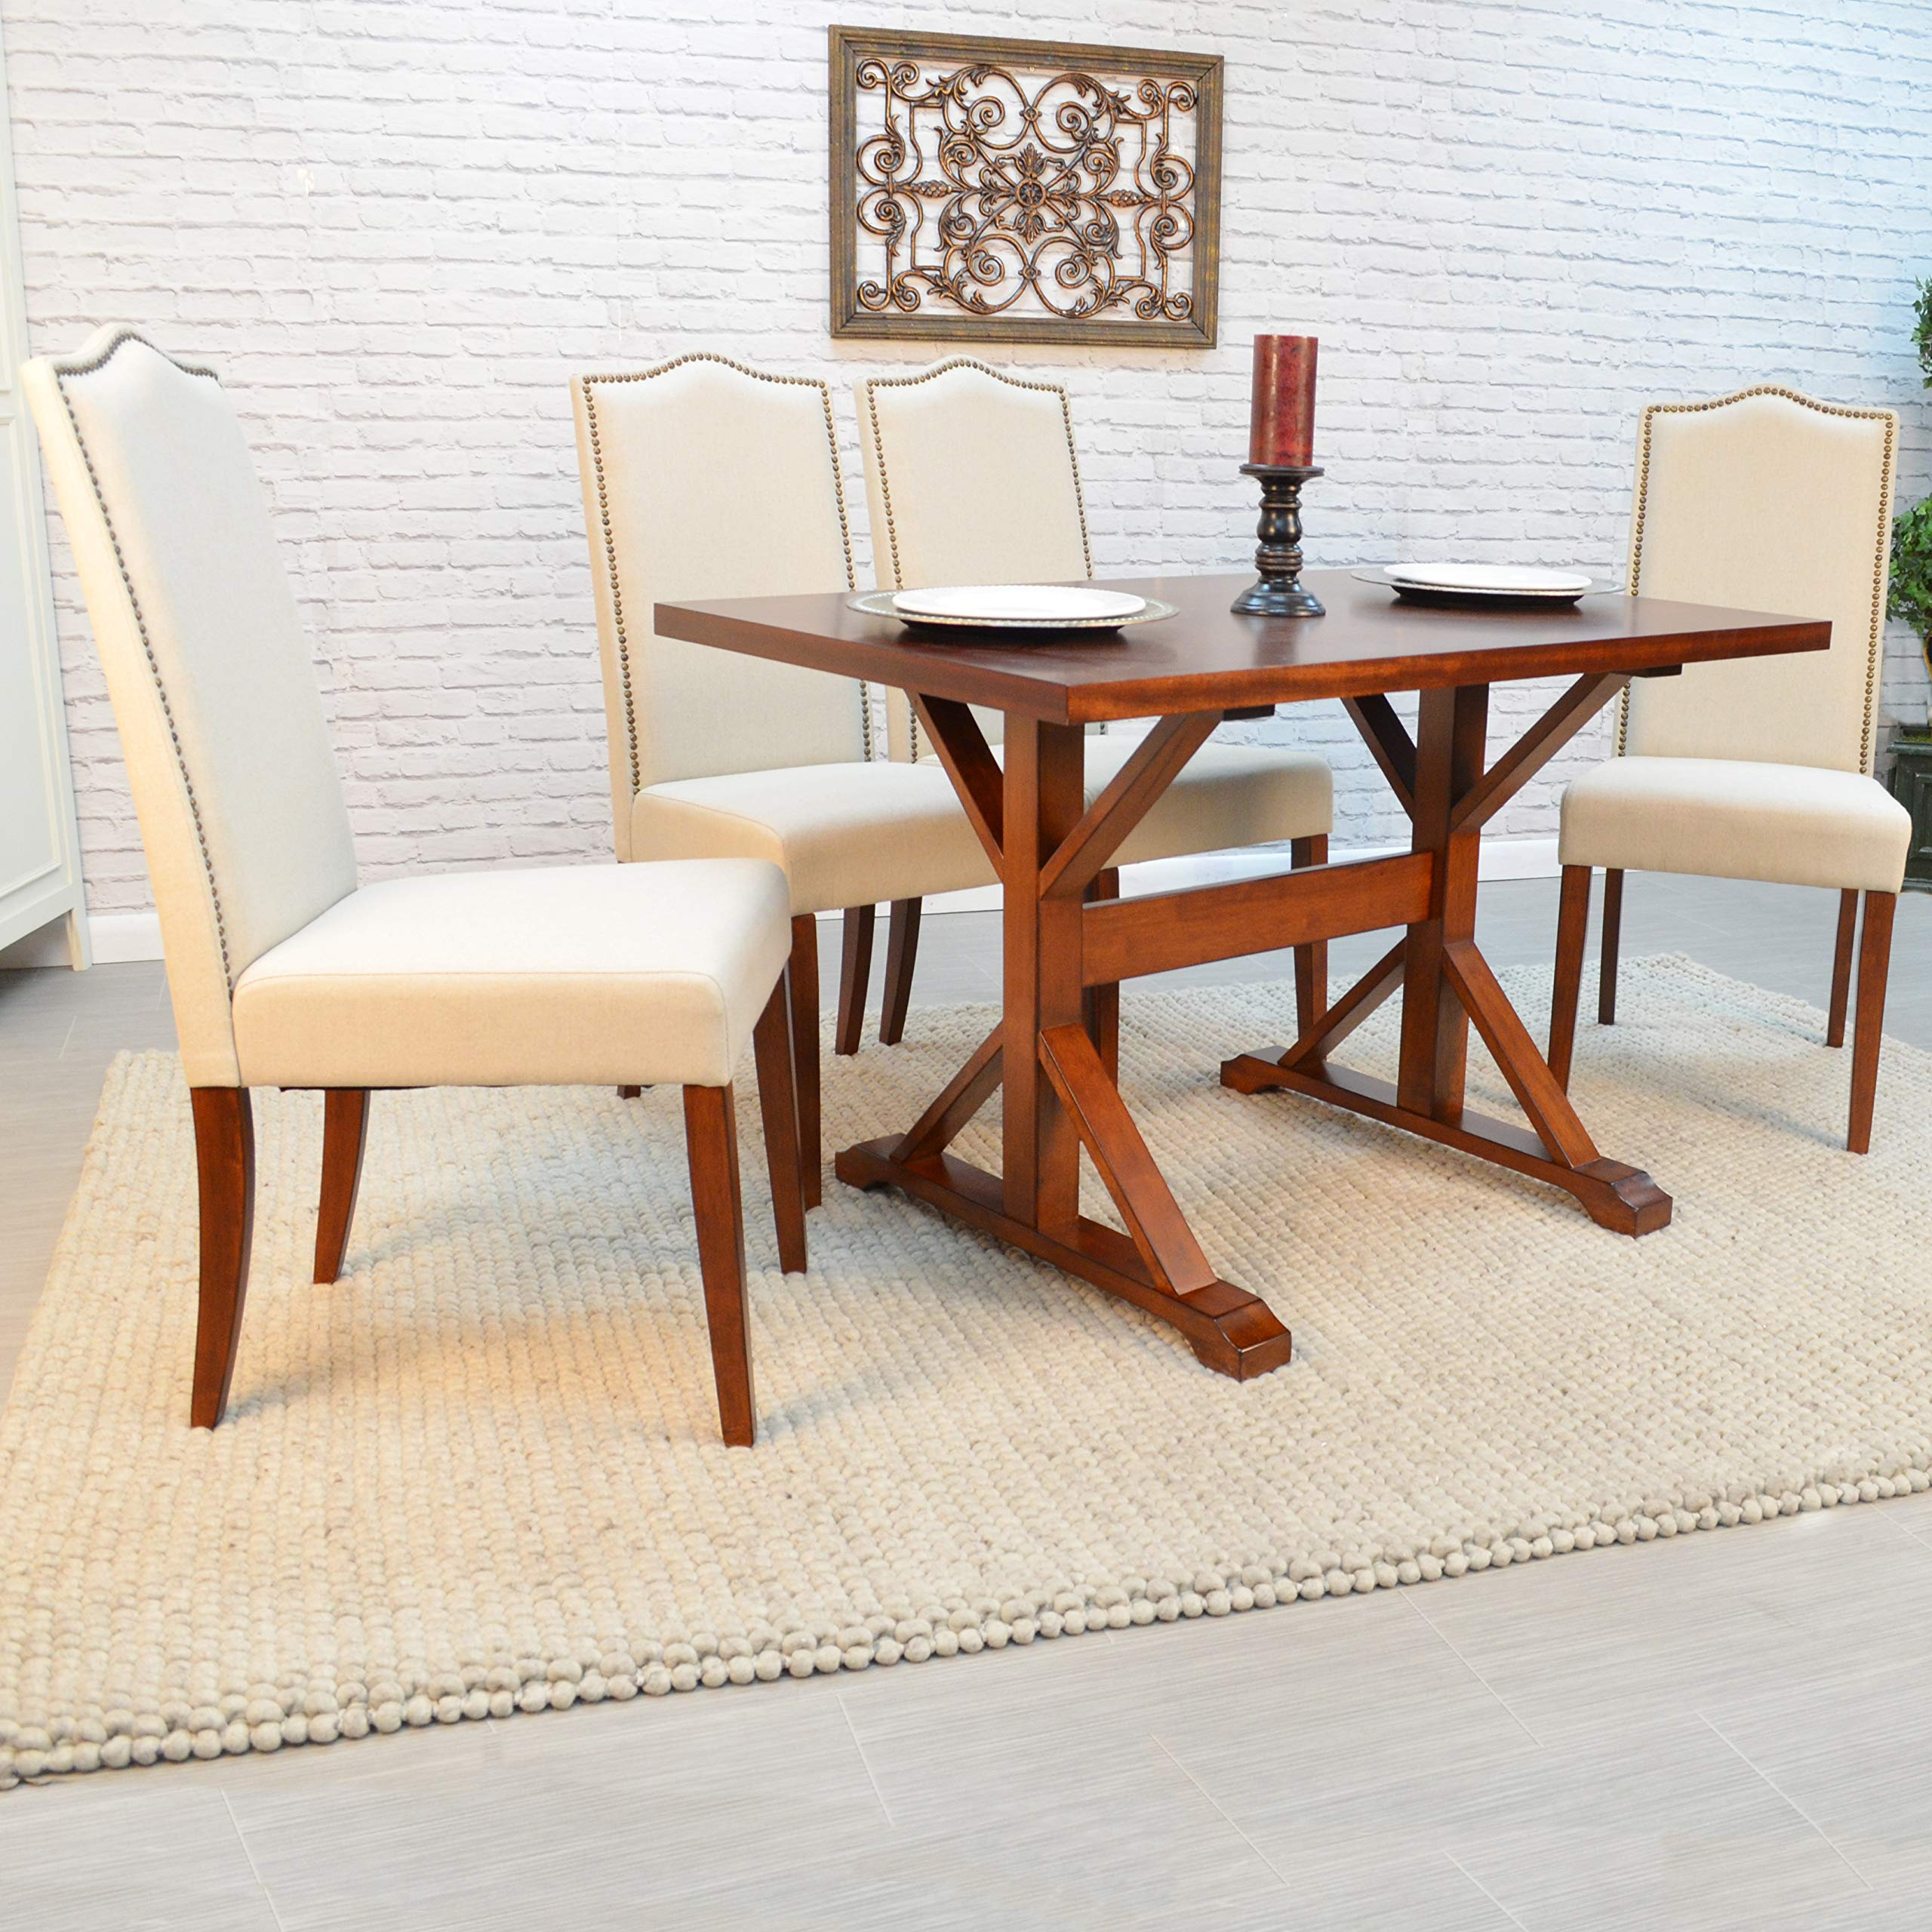 Carolina Chair and Table Romero Parson Chair in Chestnut